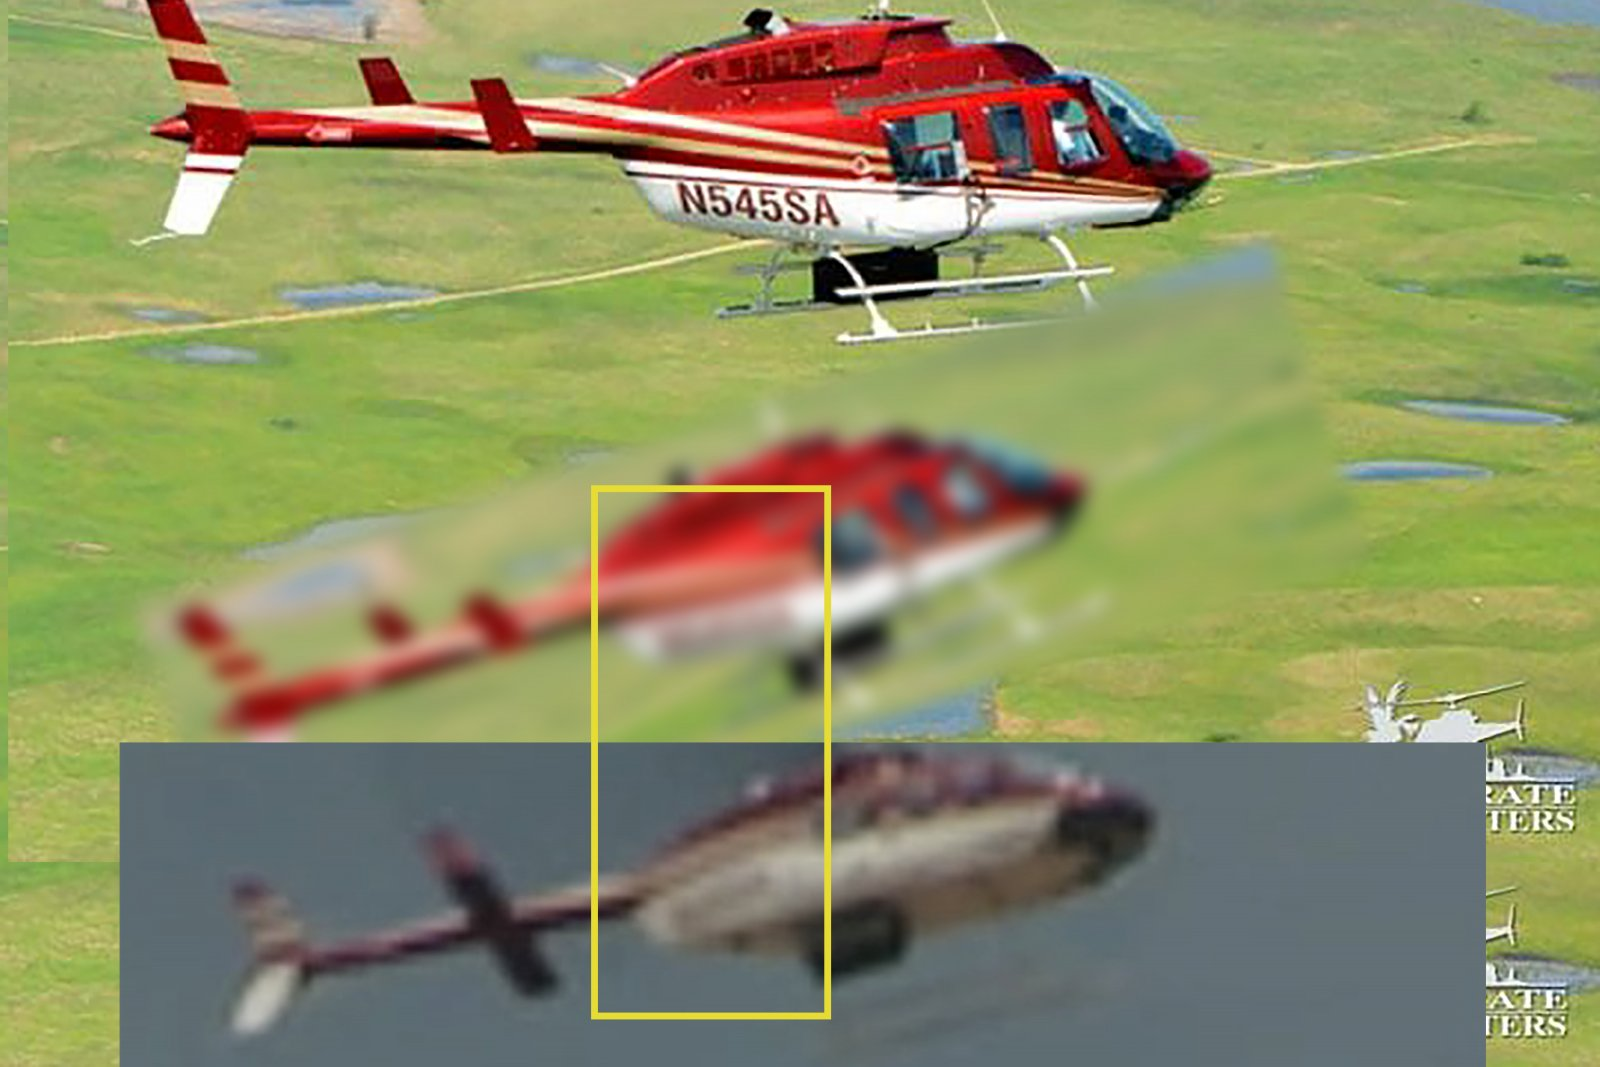 helicopter number compare.jpg